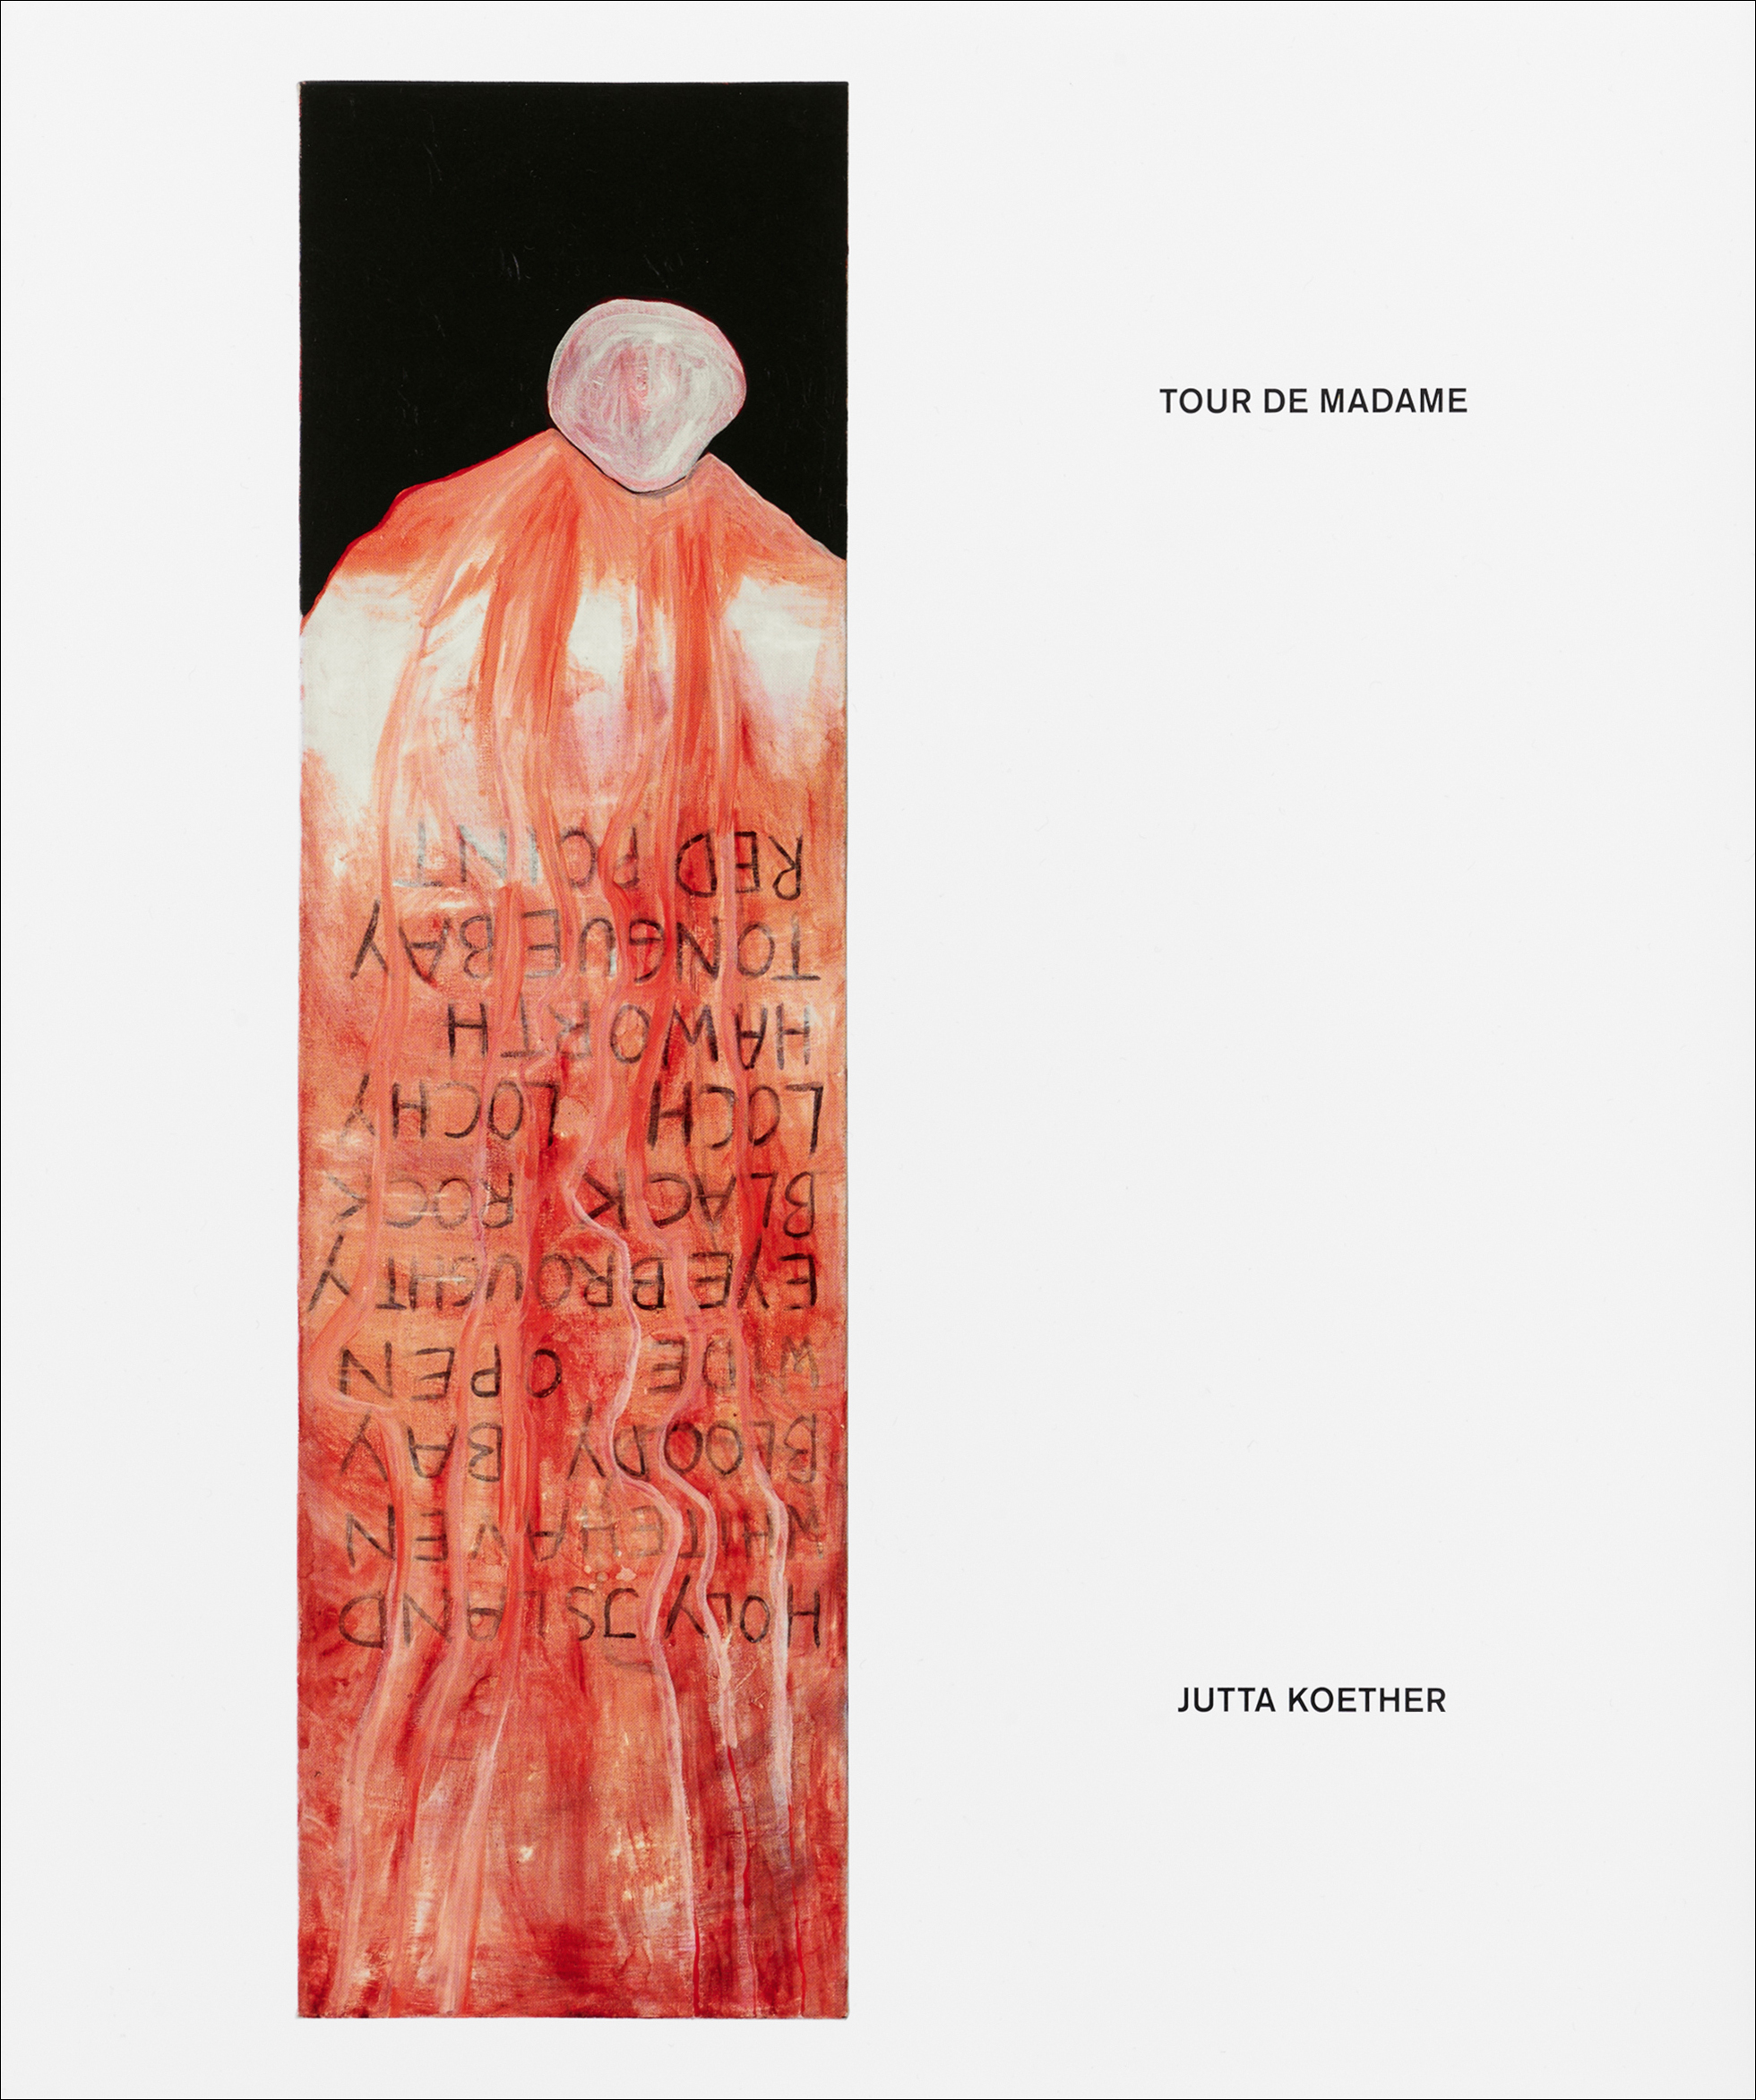 "Jutta Koether – ""Tour de Madame"" 2018, 372 pages, cloth-bound, dust jacket, fully illustrated in color, 30,4 x 25,8 cm Euro 49.80,- – This comprehensive catalogue is published on the occasion of Jutta Koether's survey exhibition at Museum Brandhorst in Munich and Musee d'Art Moderne Grand-Duc Jean, Luxembourg. The catalogue, edited by Achim Hochdörfer and Tonio Kröner, contains new texts by Michael Sanchez, Anne M. Wagner, Achim Hochdörfer, Branden W. Joseph, Manuela Ammer, Julia Gelshorn, Tonio Kröner, and Benjamin H.D. Buchhloh. The catalogue is published in both German and English language editions."